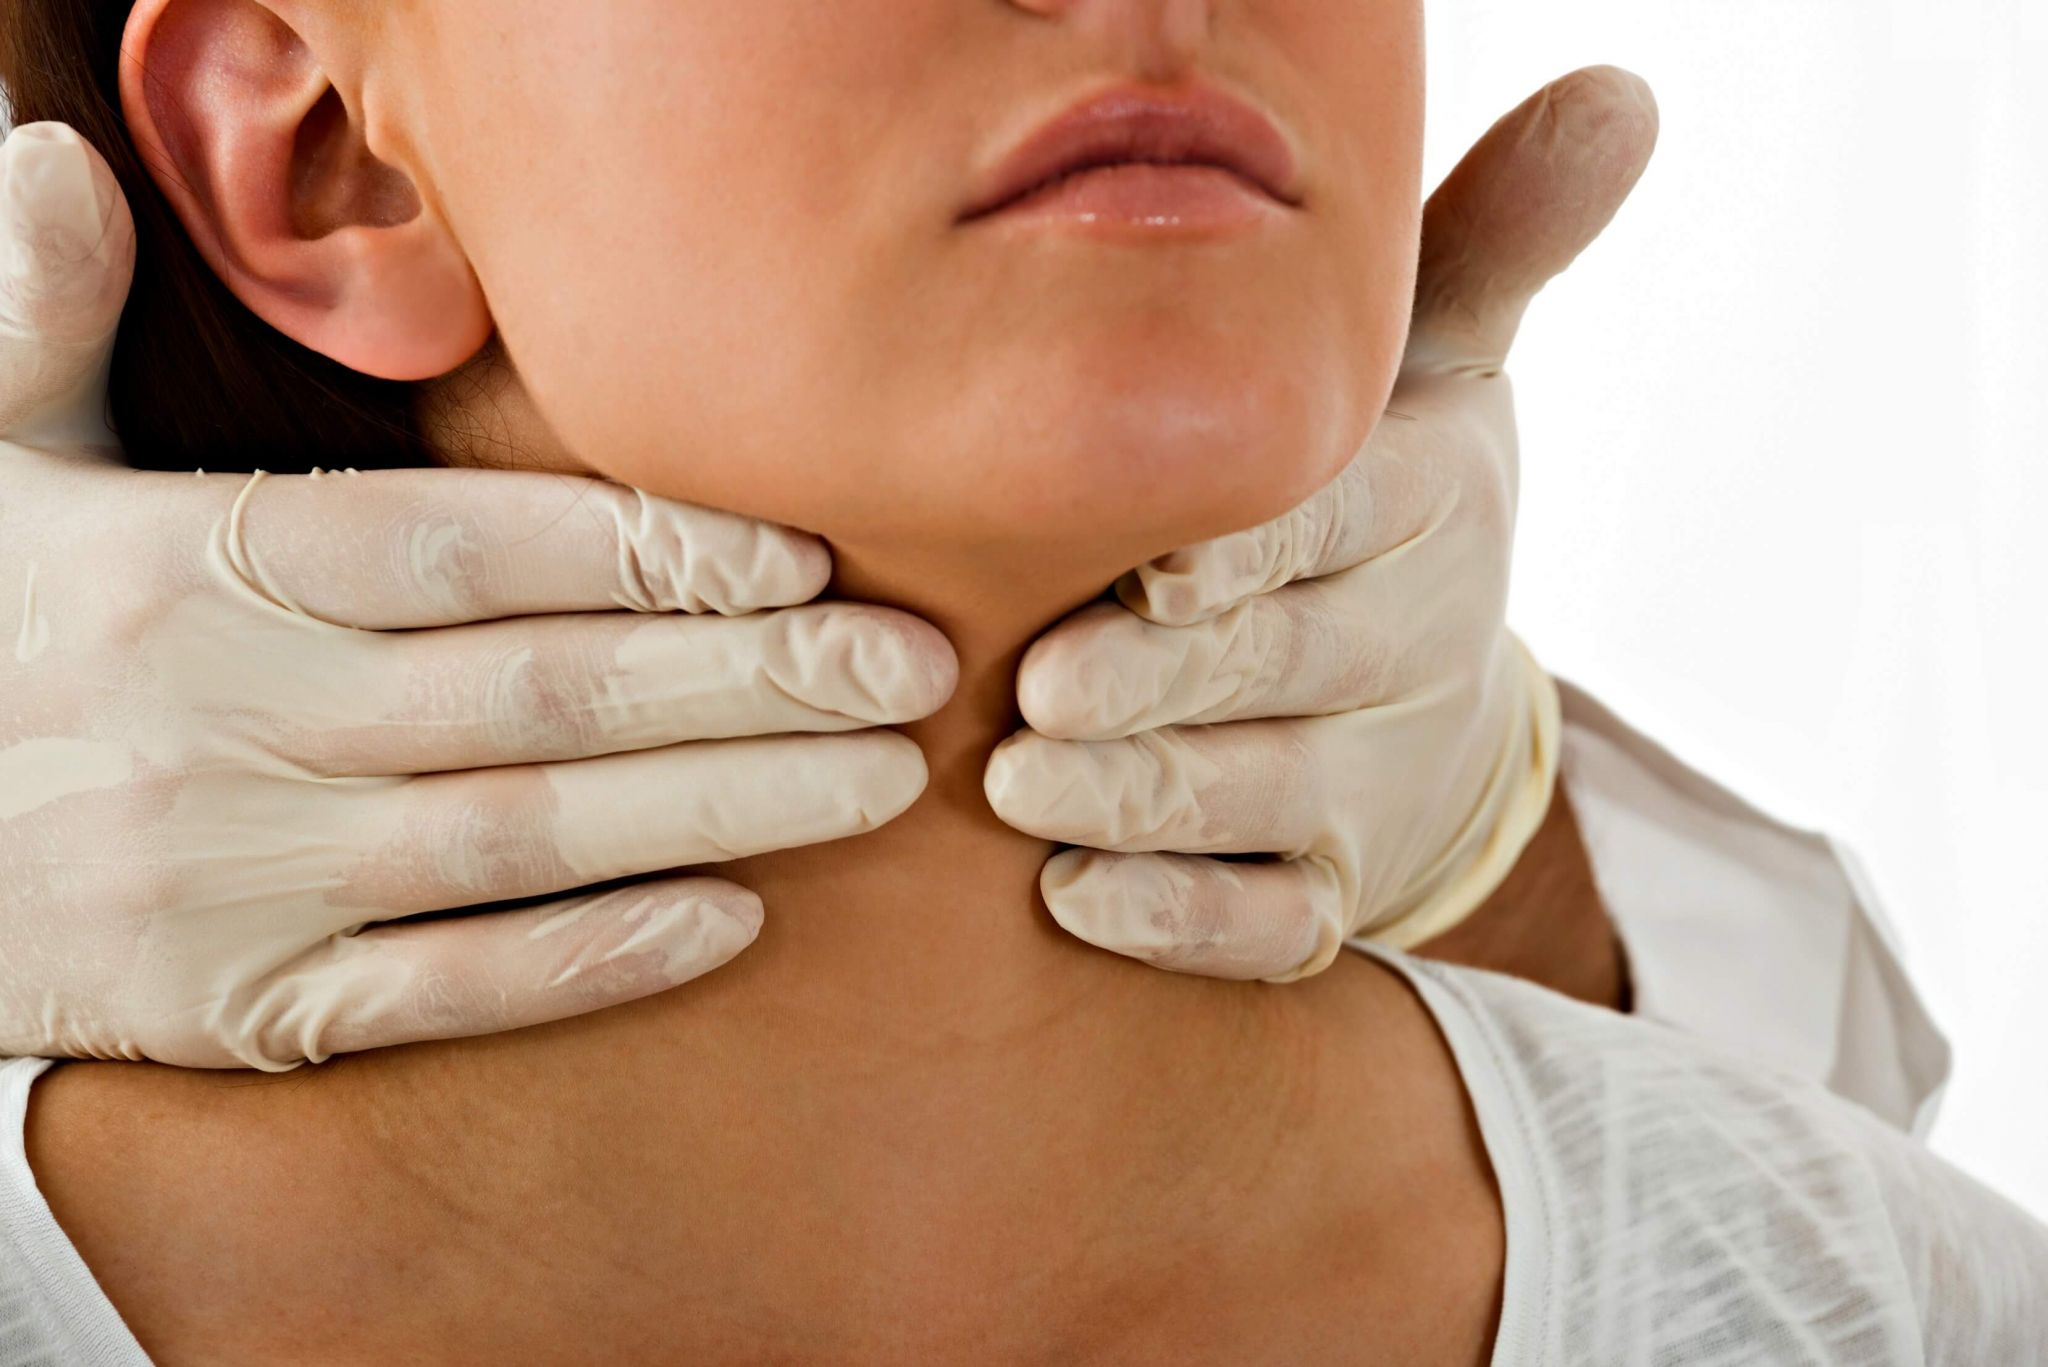 underactive thyroid symptoms - woman having her neck examined